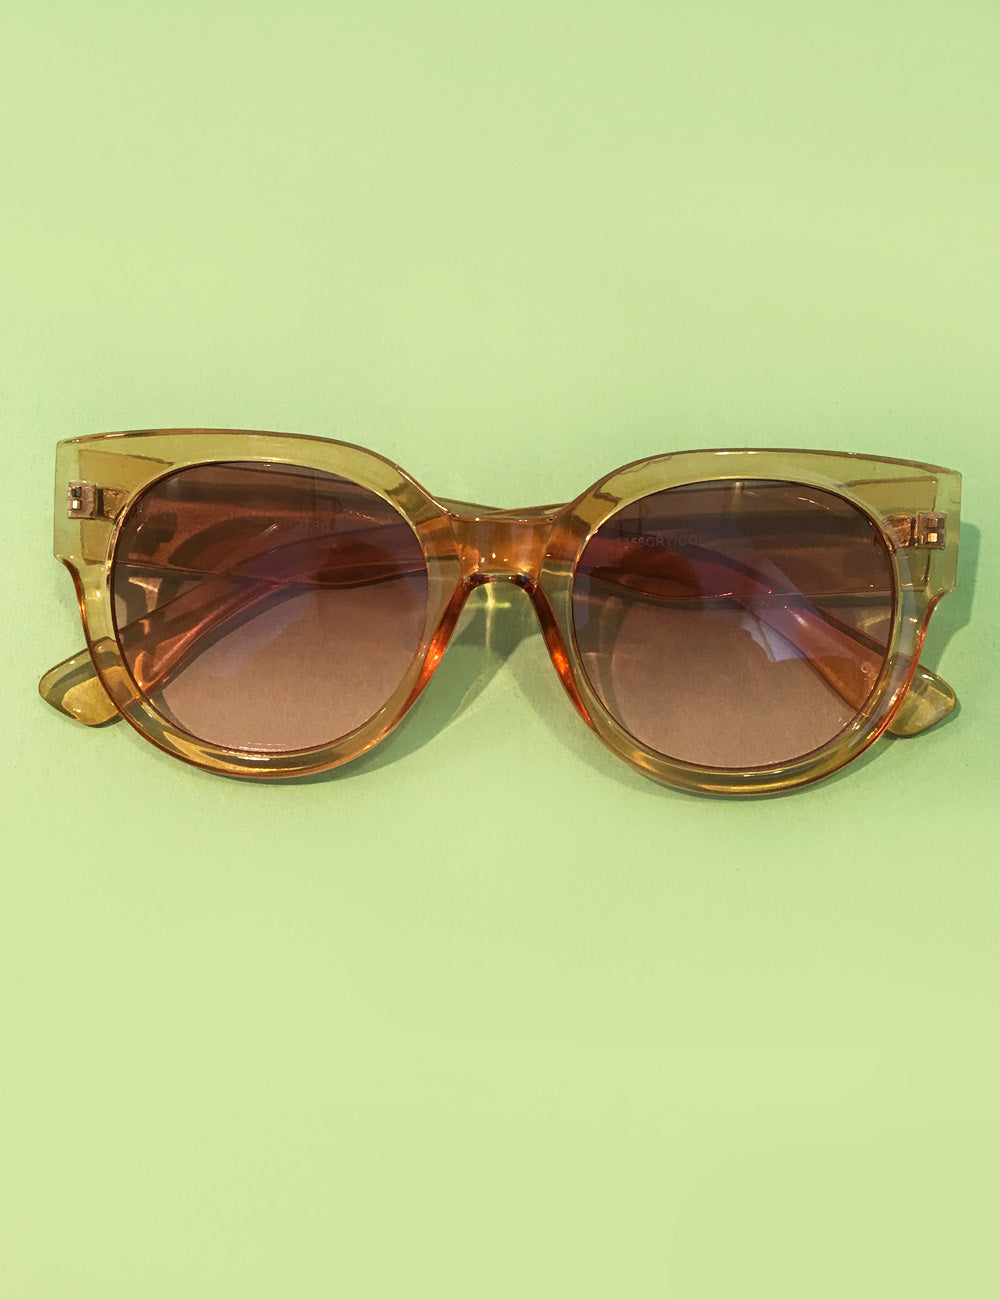 Tan Translucent Summer Shade Retro Inspired Sunglasses